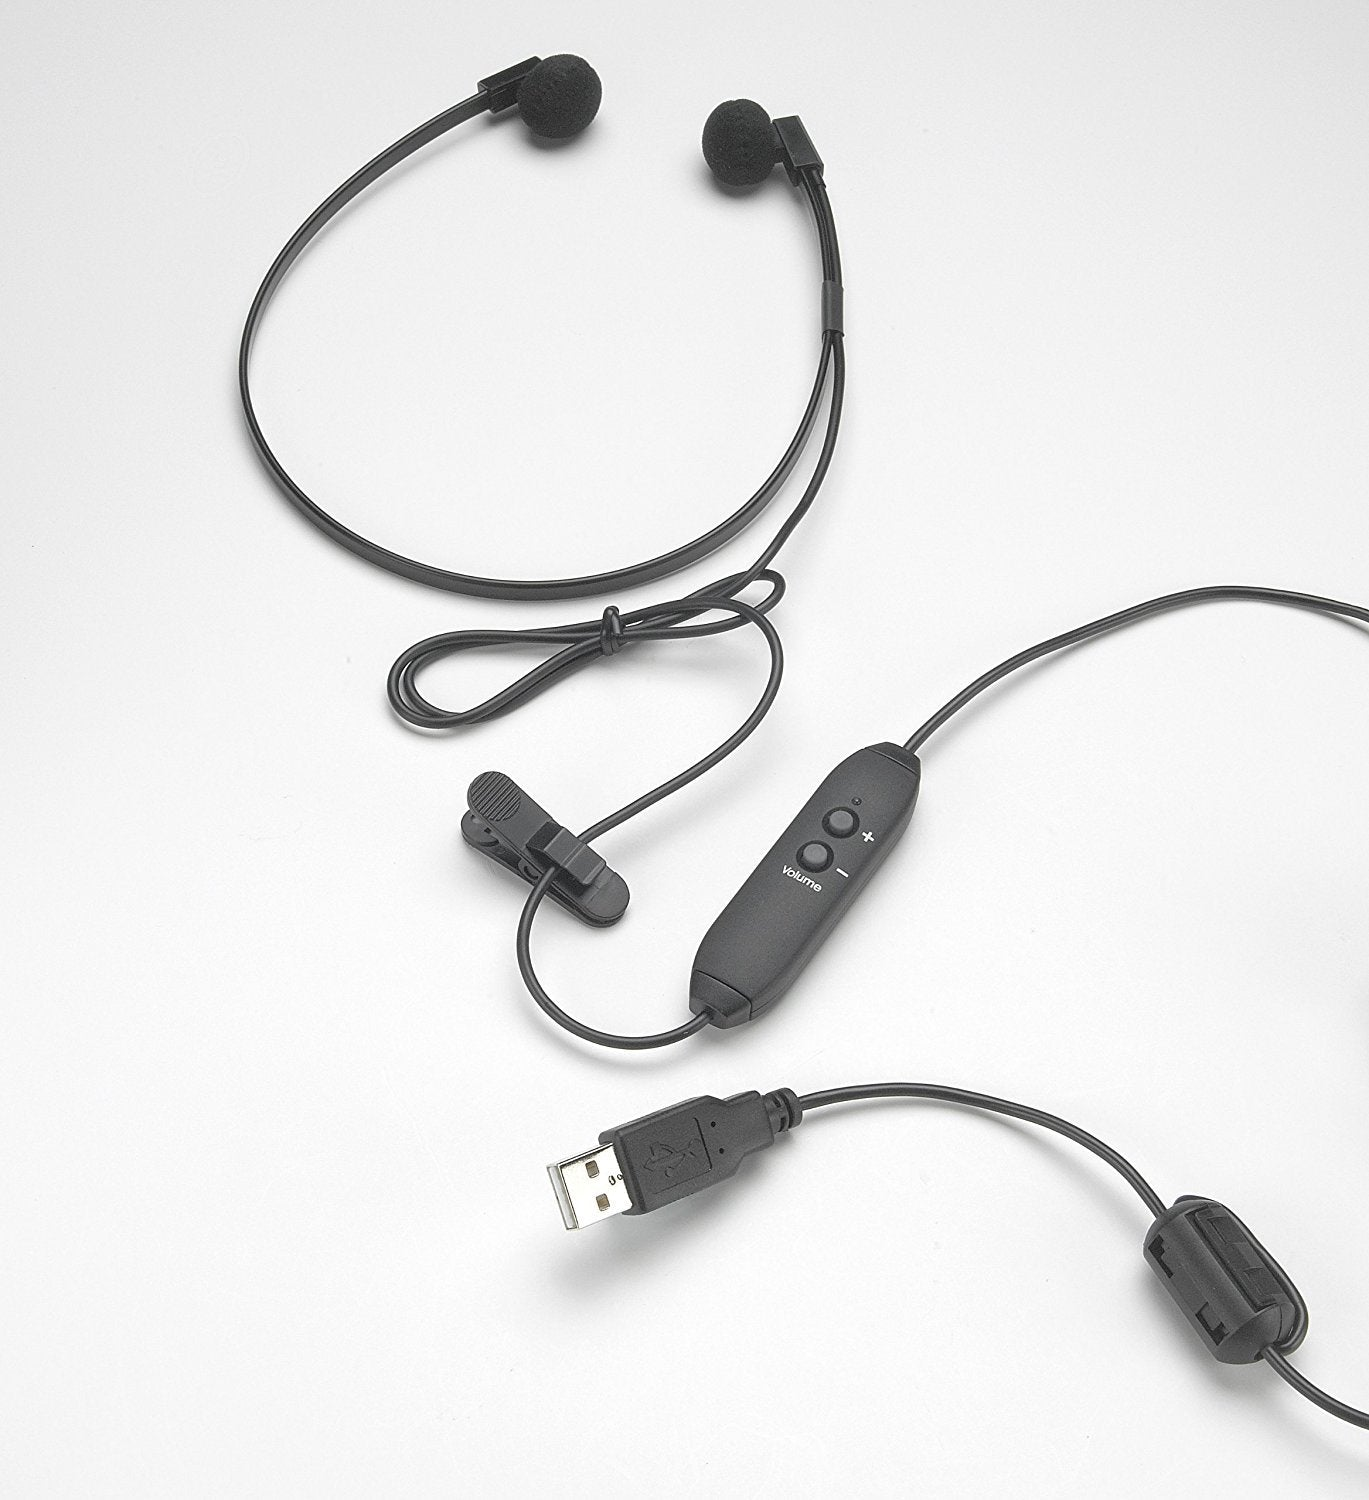 Spectra SP-USB Transcription Headset